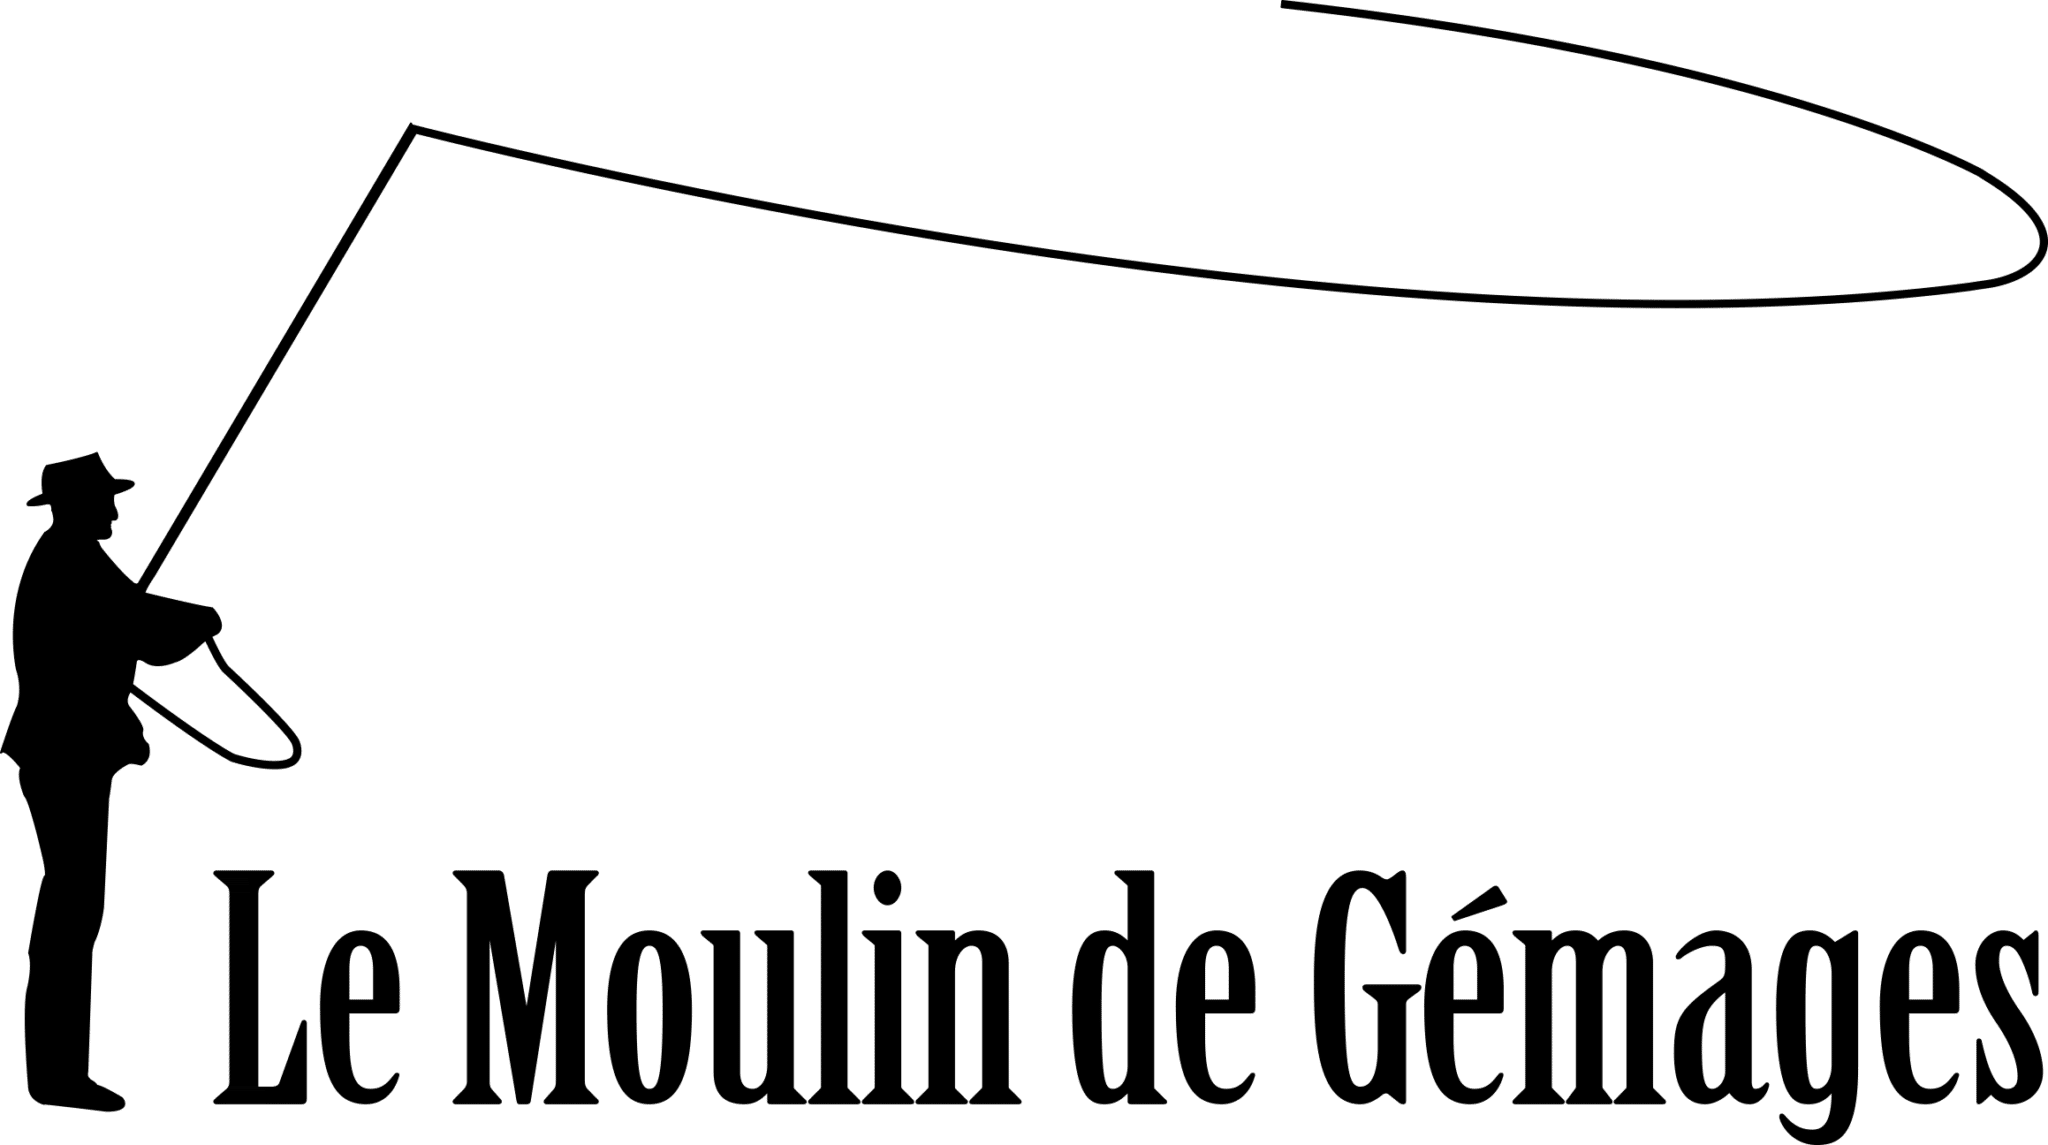 Logo Moulin de gémages